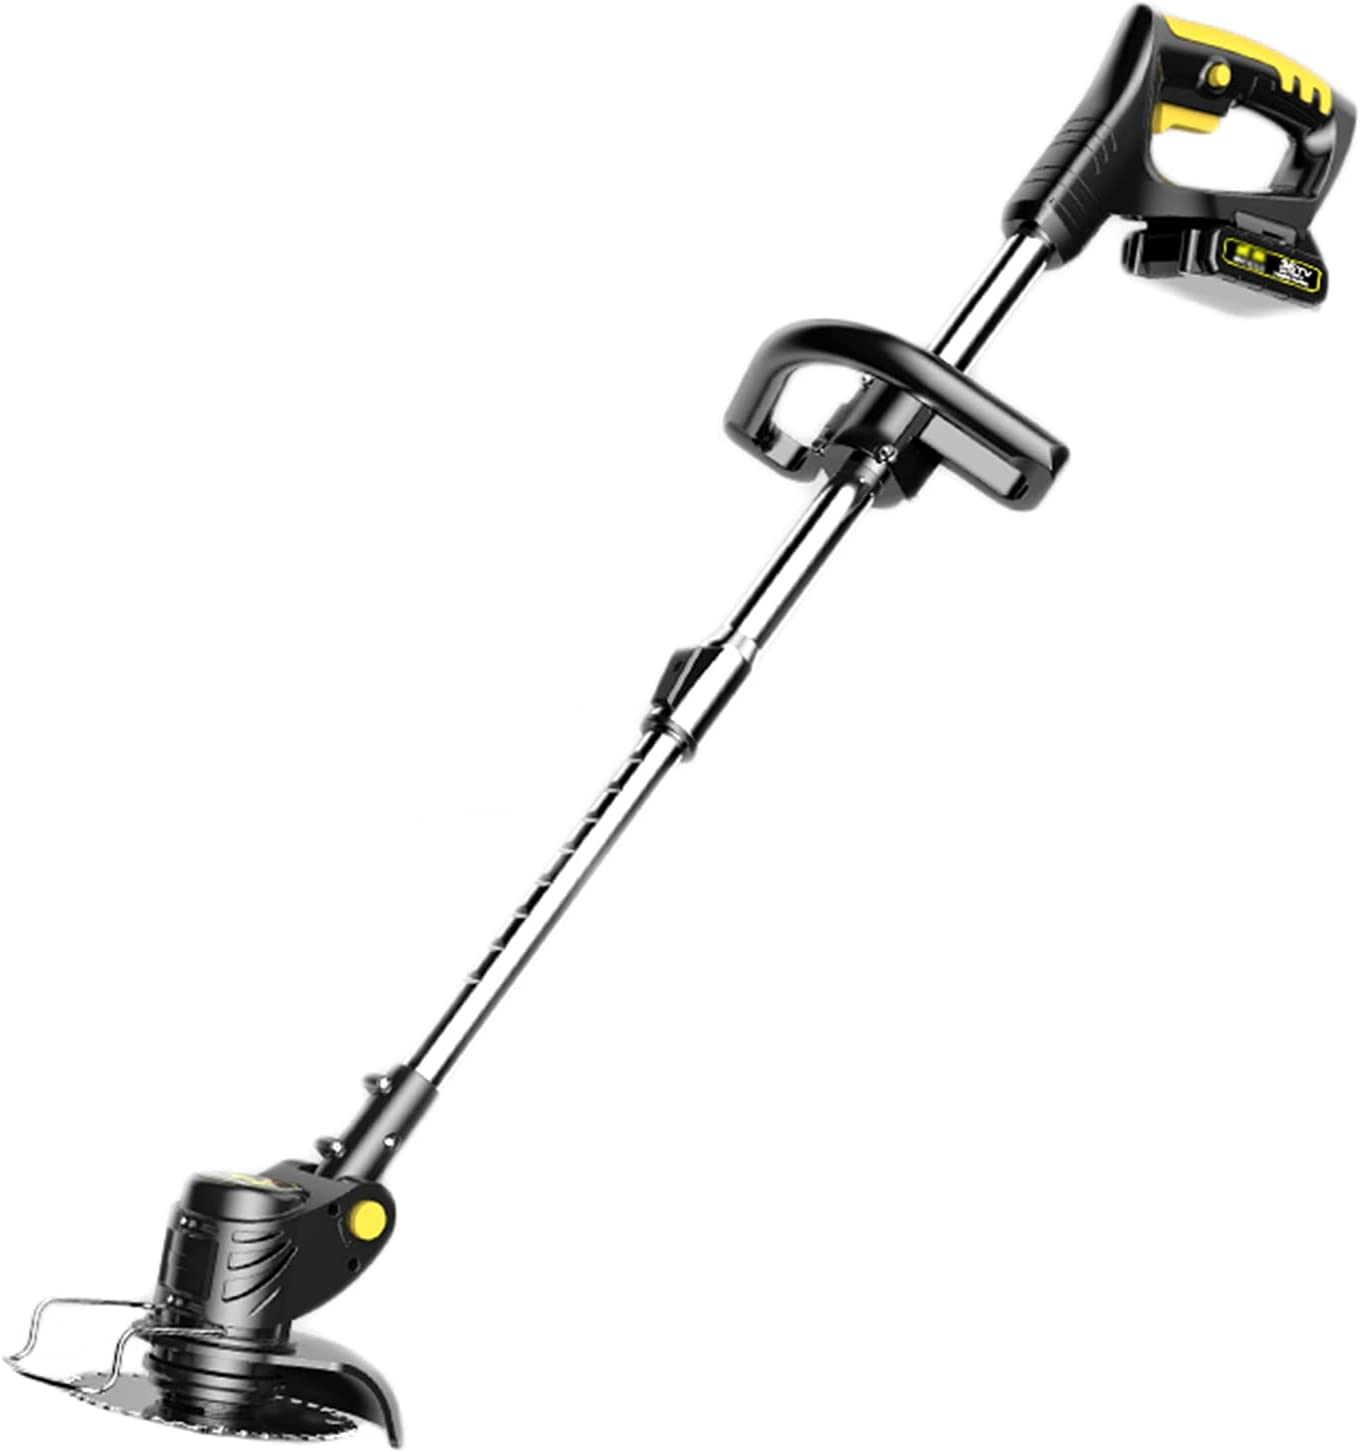 High material WLL-DP Electric El Paso Mall Telescopic Grass Cutter Lawn Cordless Handheld M